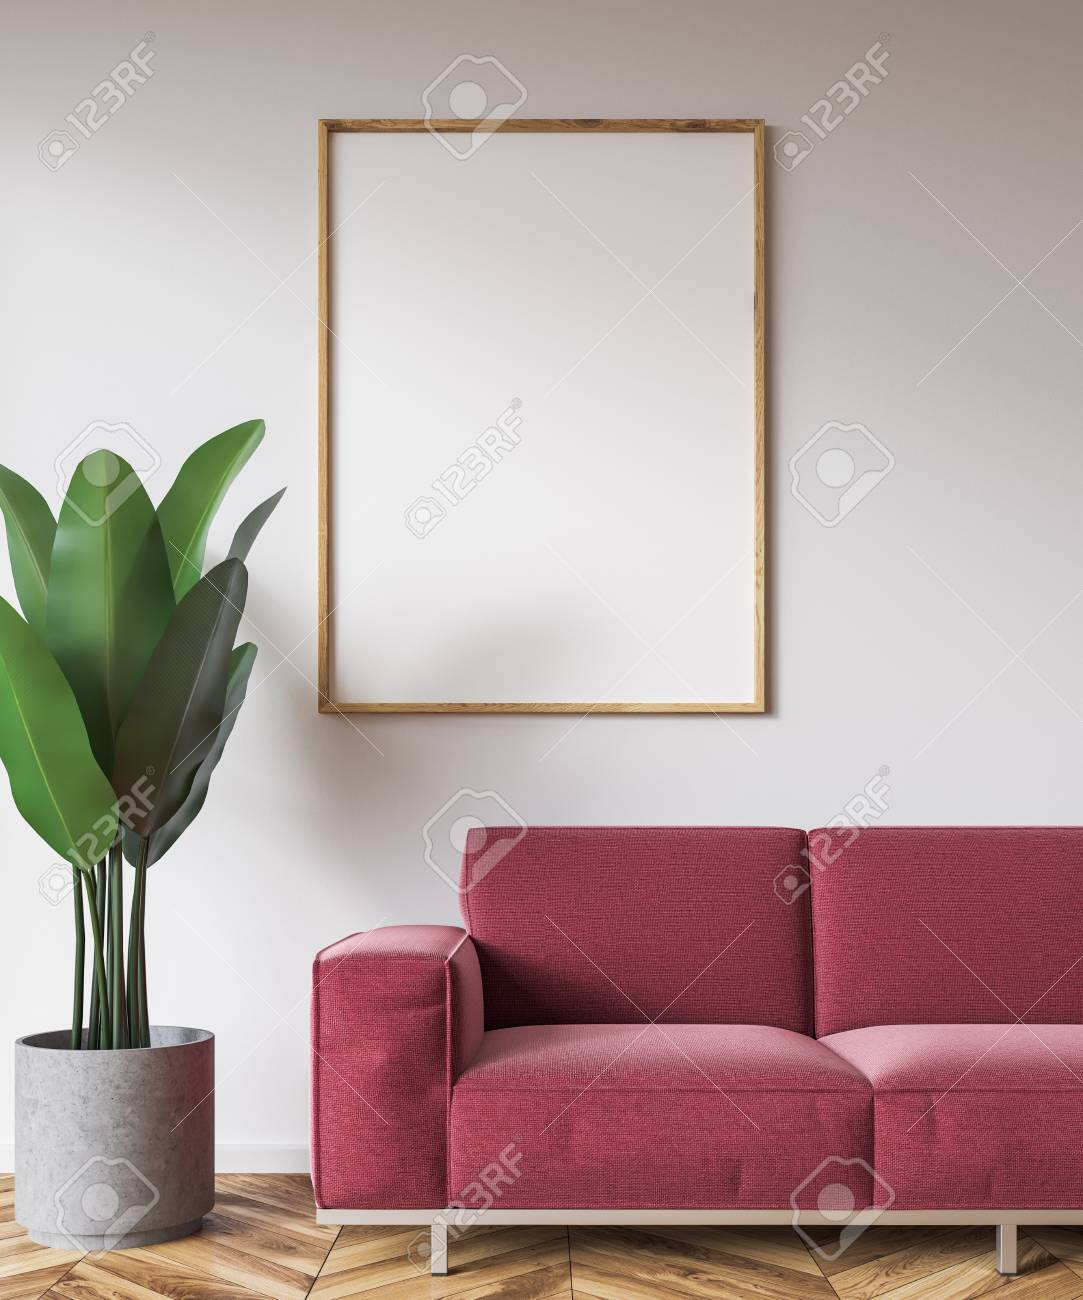 Wooden frame vertical poster hanging above a dark red couch in..